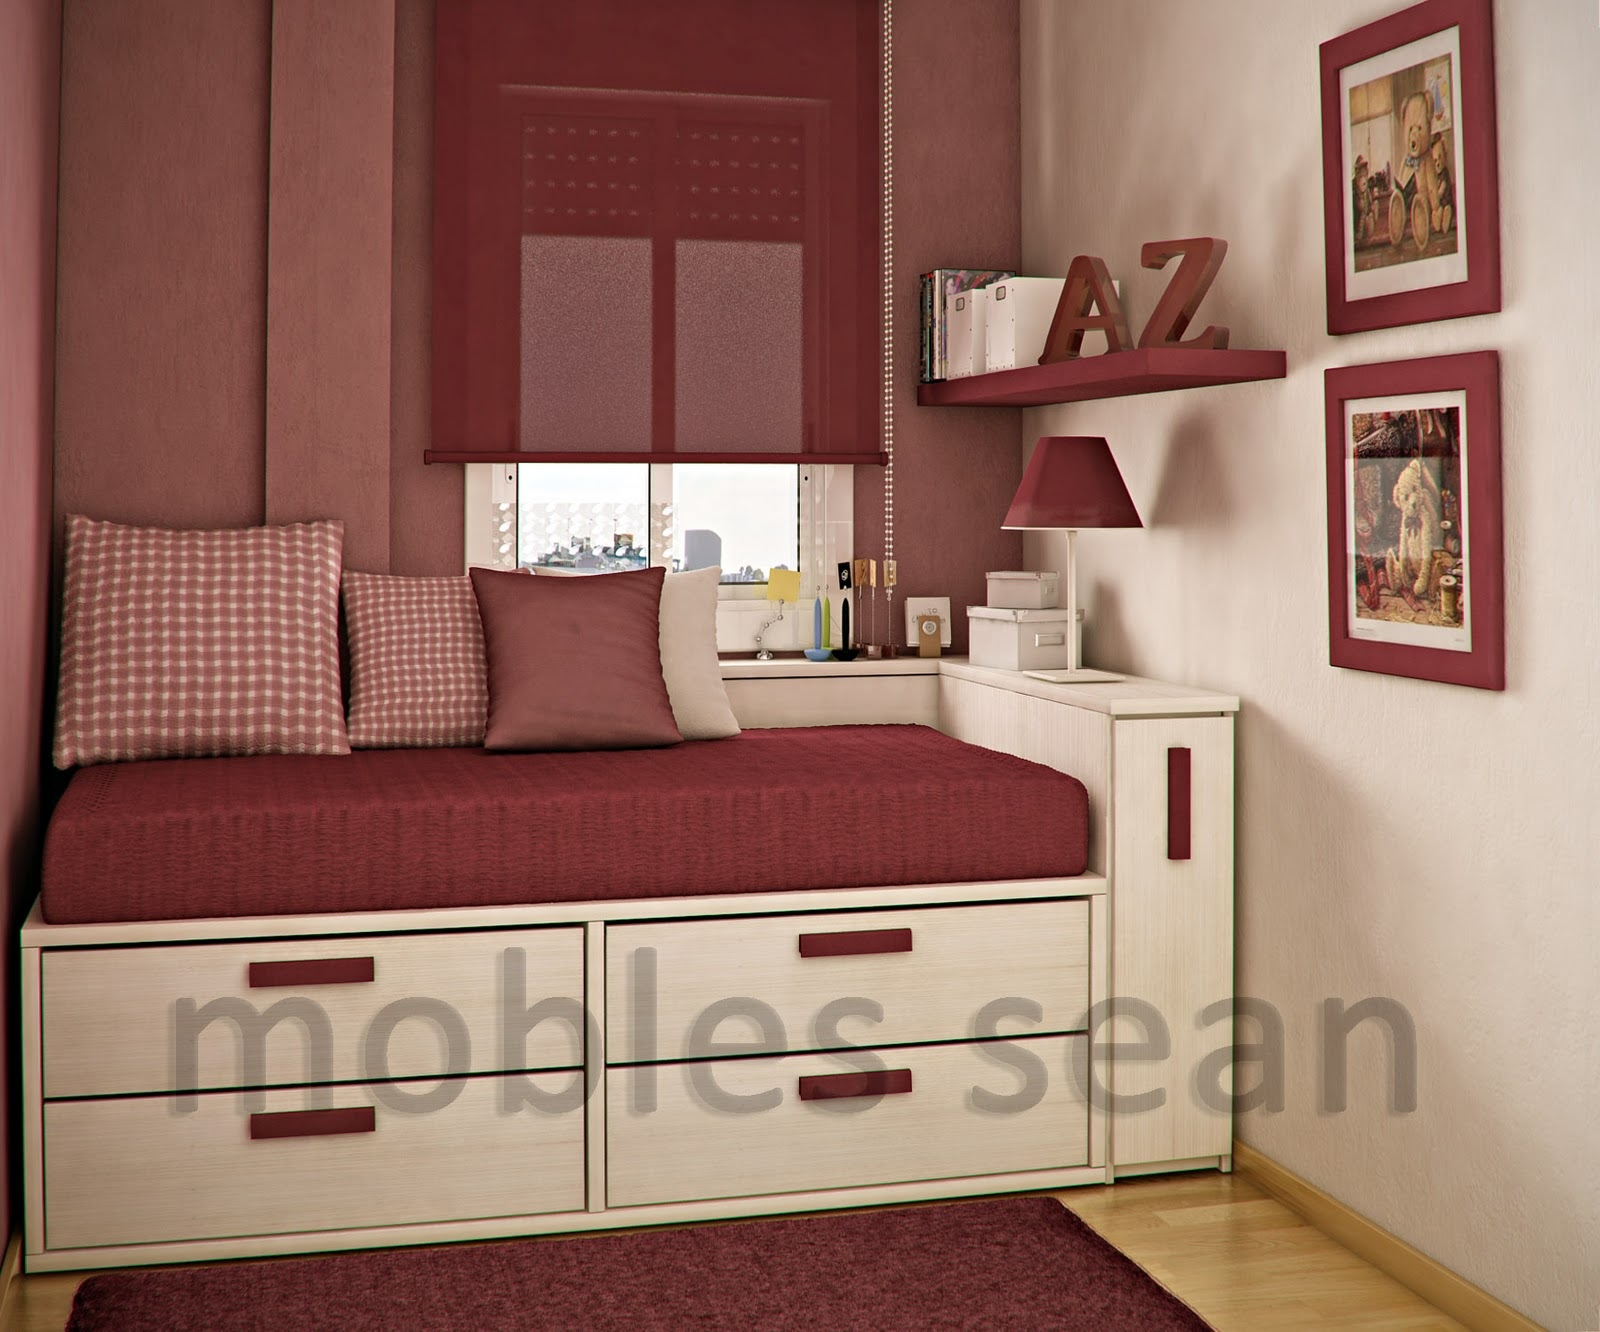 Small Room Design Room Design For Small Room  Home Design